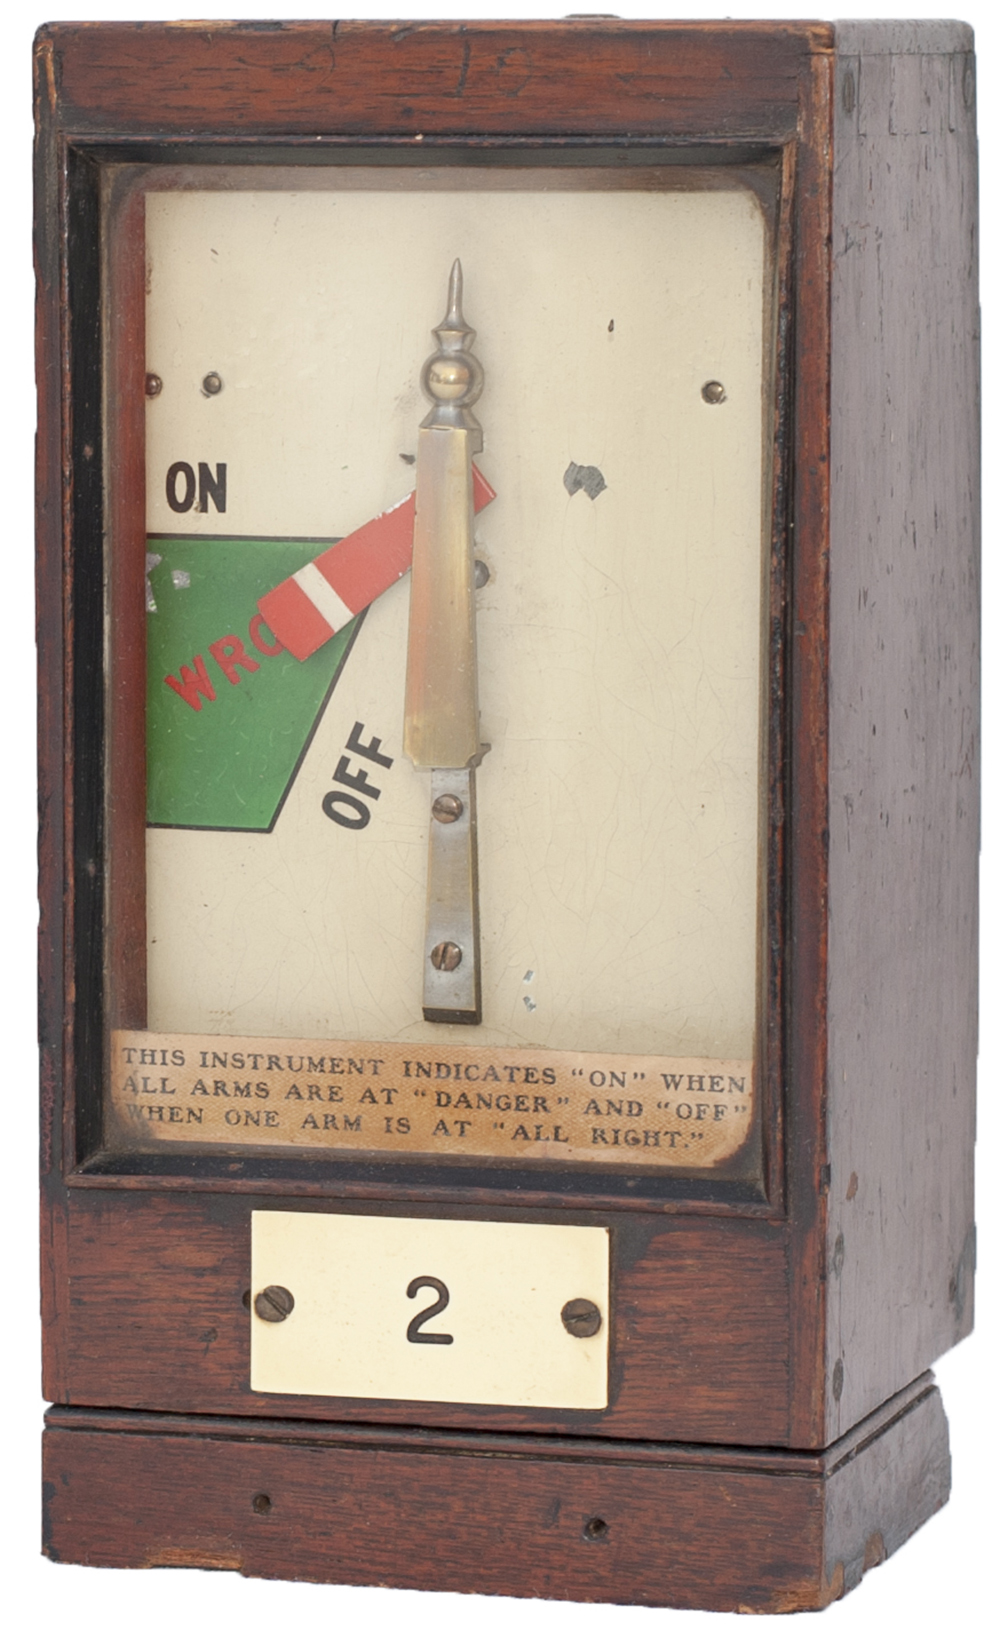 Lot 32 - GWR mahogany cased signal box Home Signal Indicator plated 2 and still retaining its original